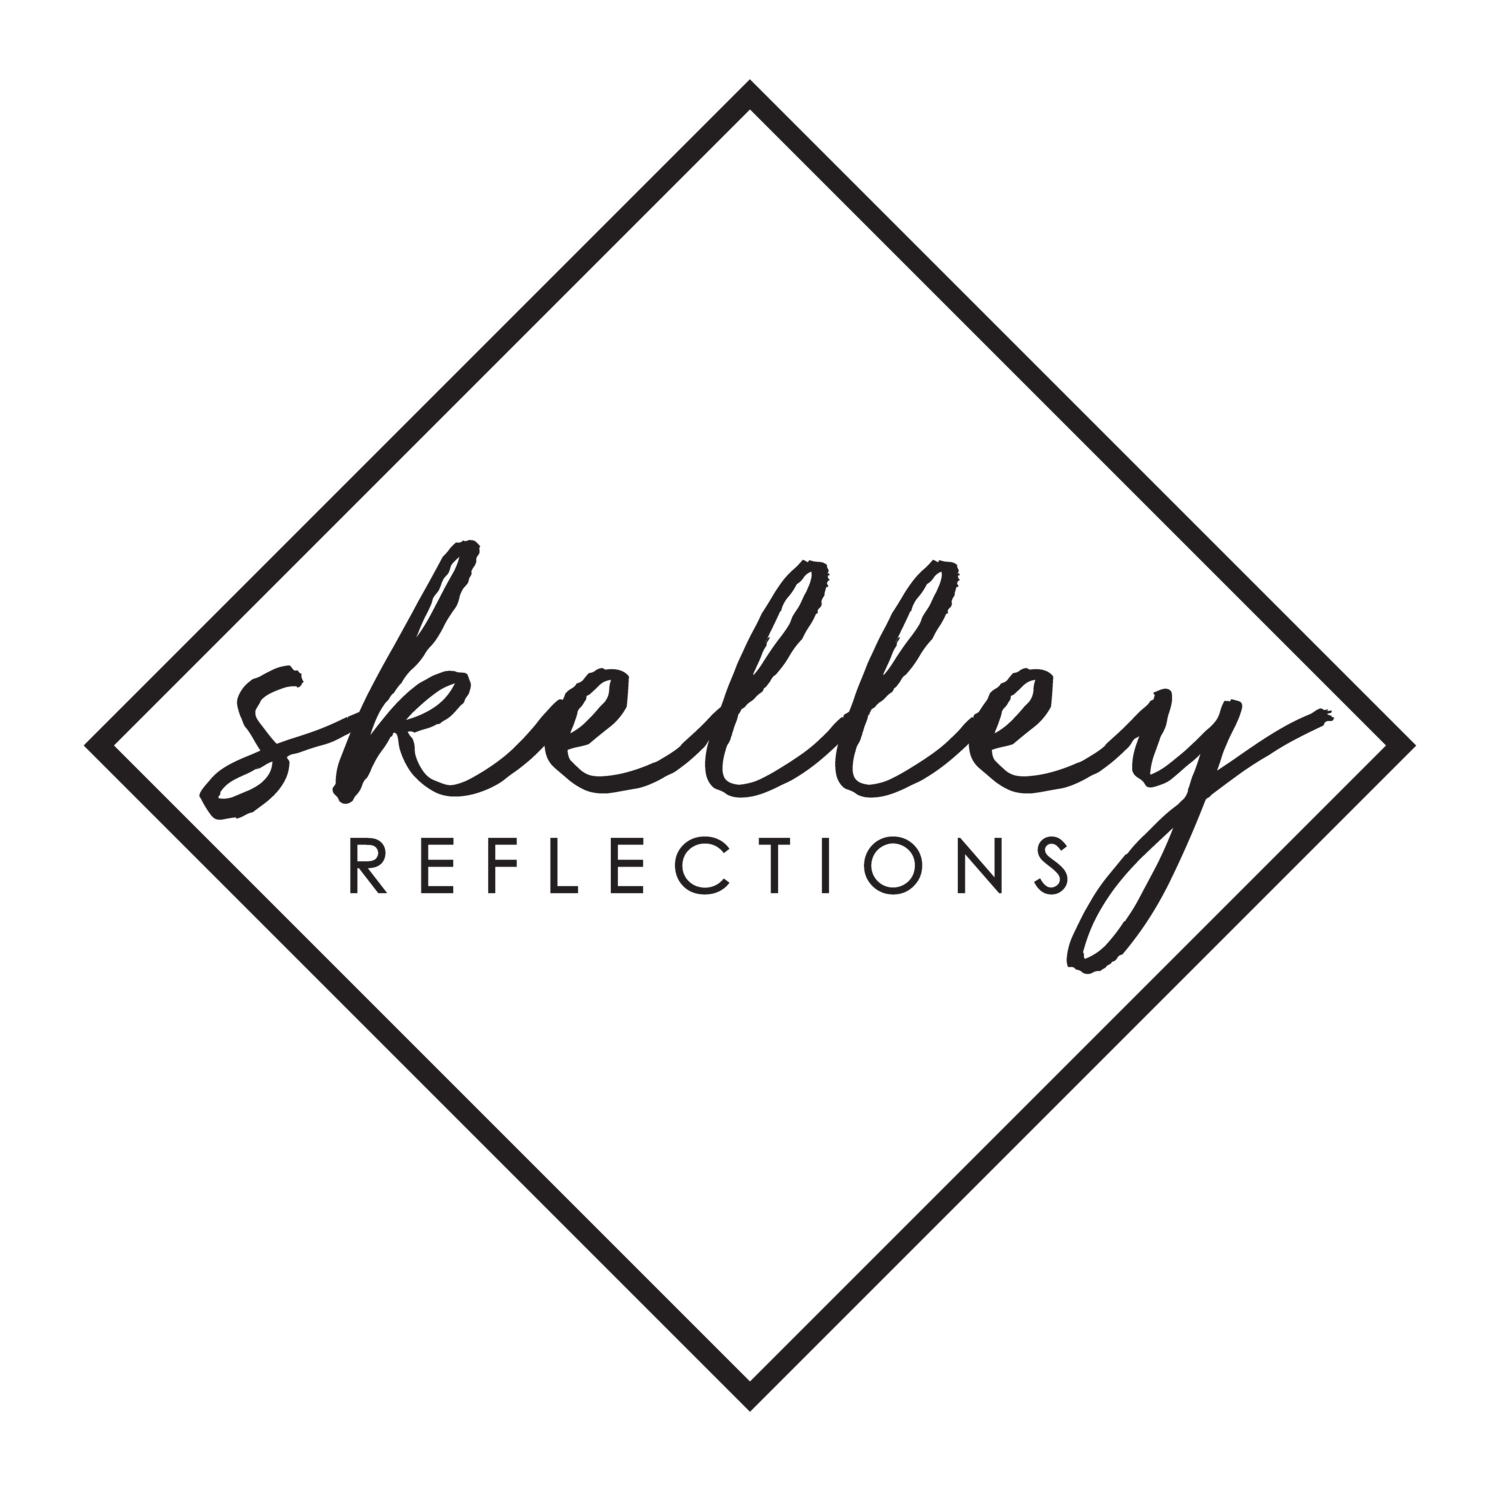 Skelley Reflections